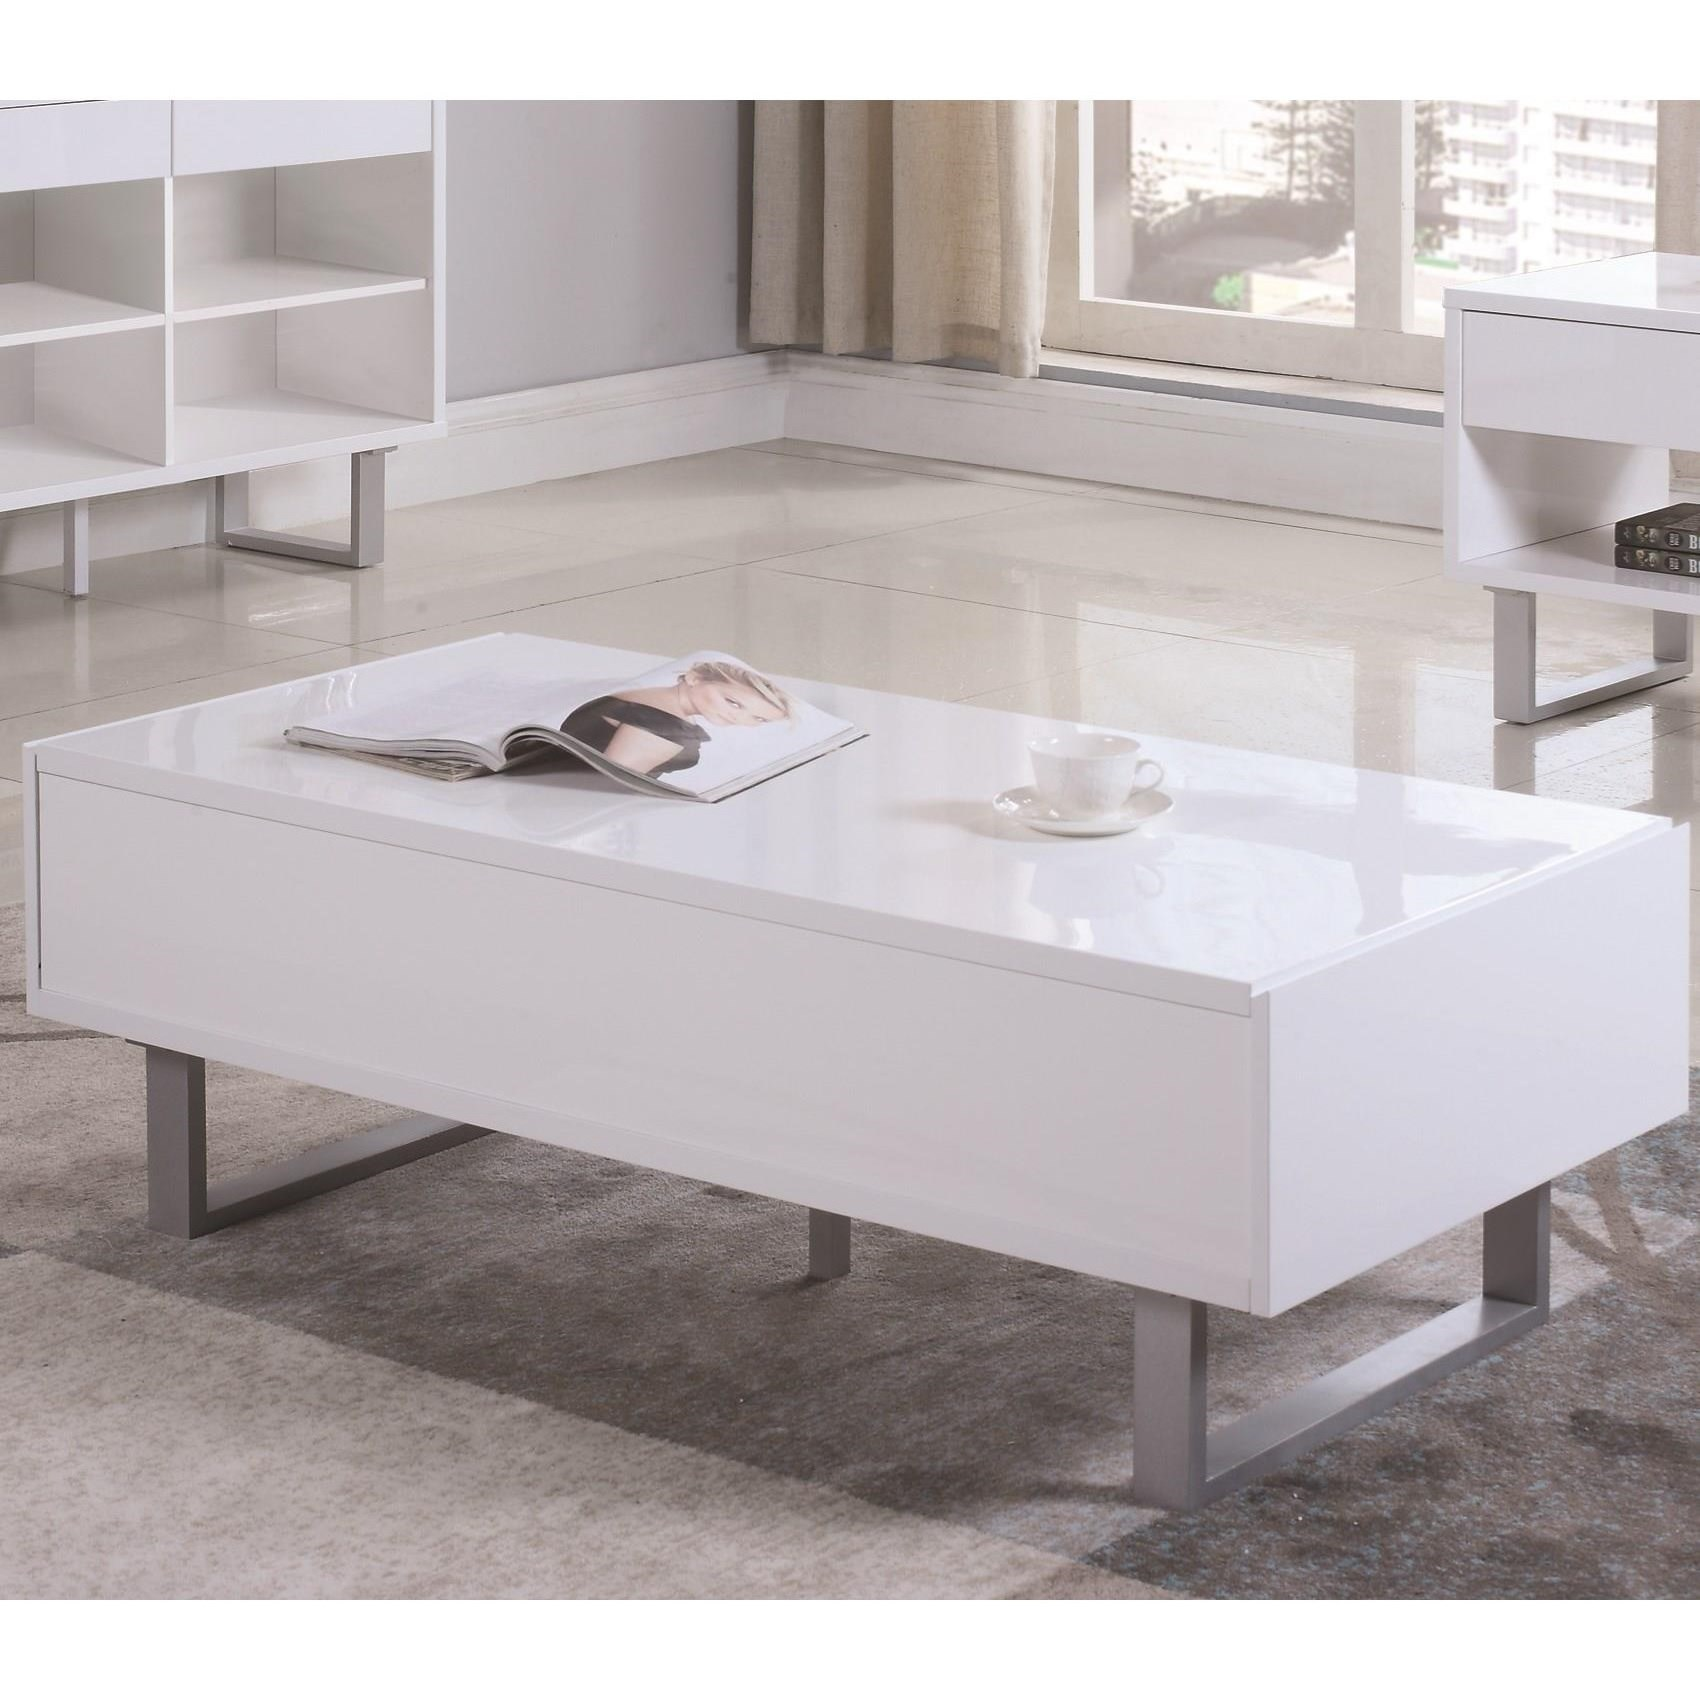 70569 Coffee Table by Coaster at Lapeer Furniture & Mattress Center